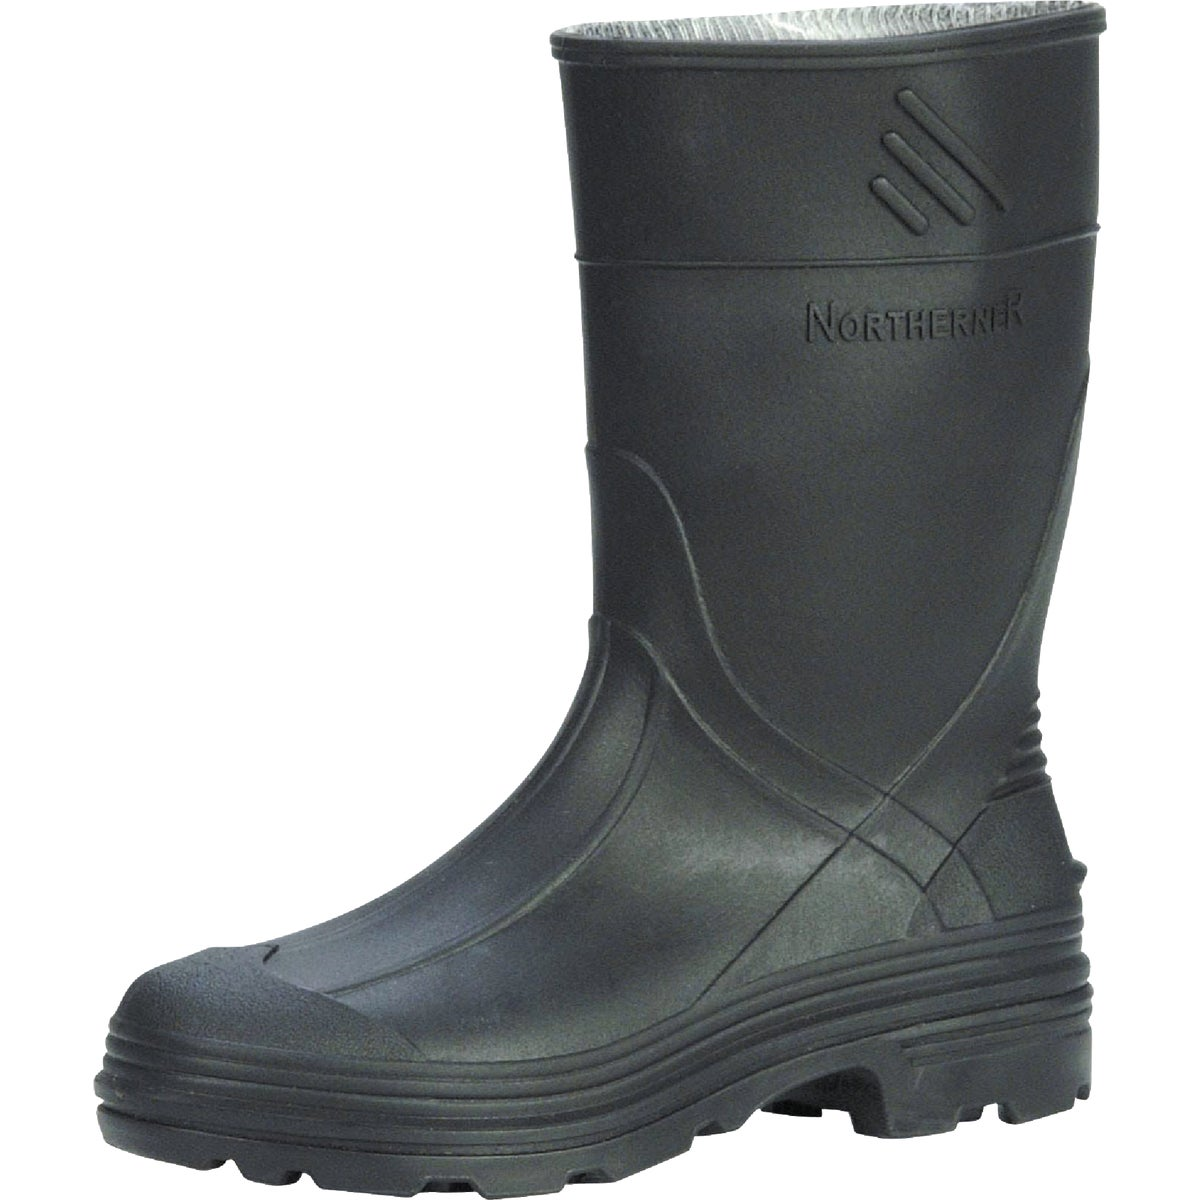 SZ3 YTH BLK PVC RAINBOOT - 76002-3 by Norcross Safety Prod